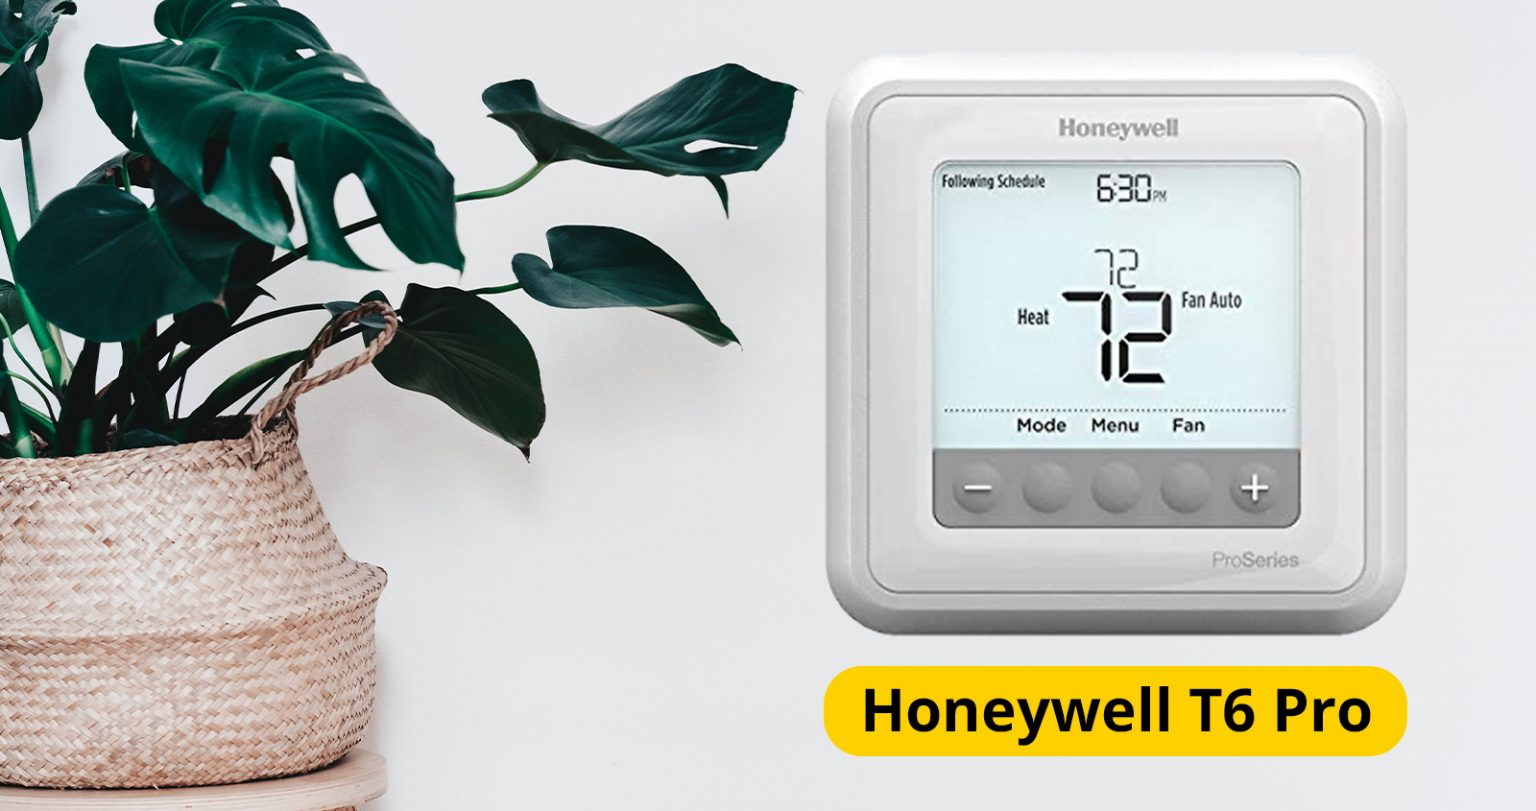 Honeywell T6 Pro Thermostat, Mister Quik